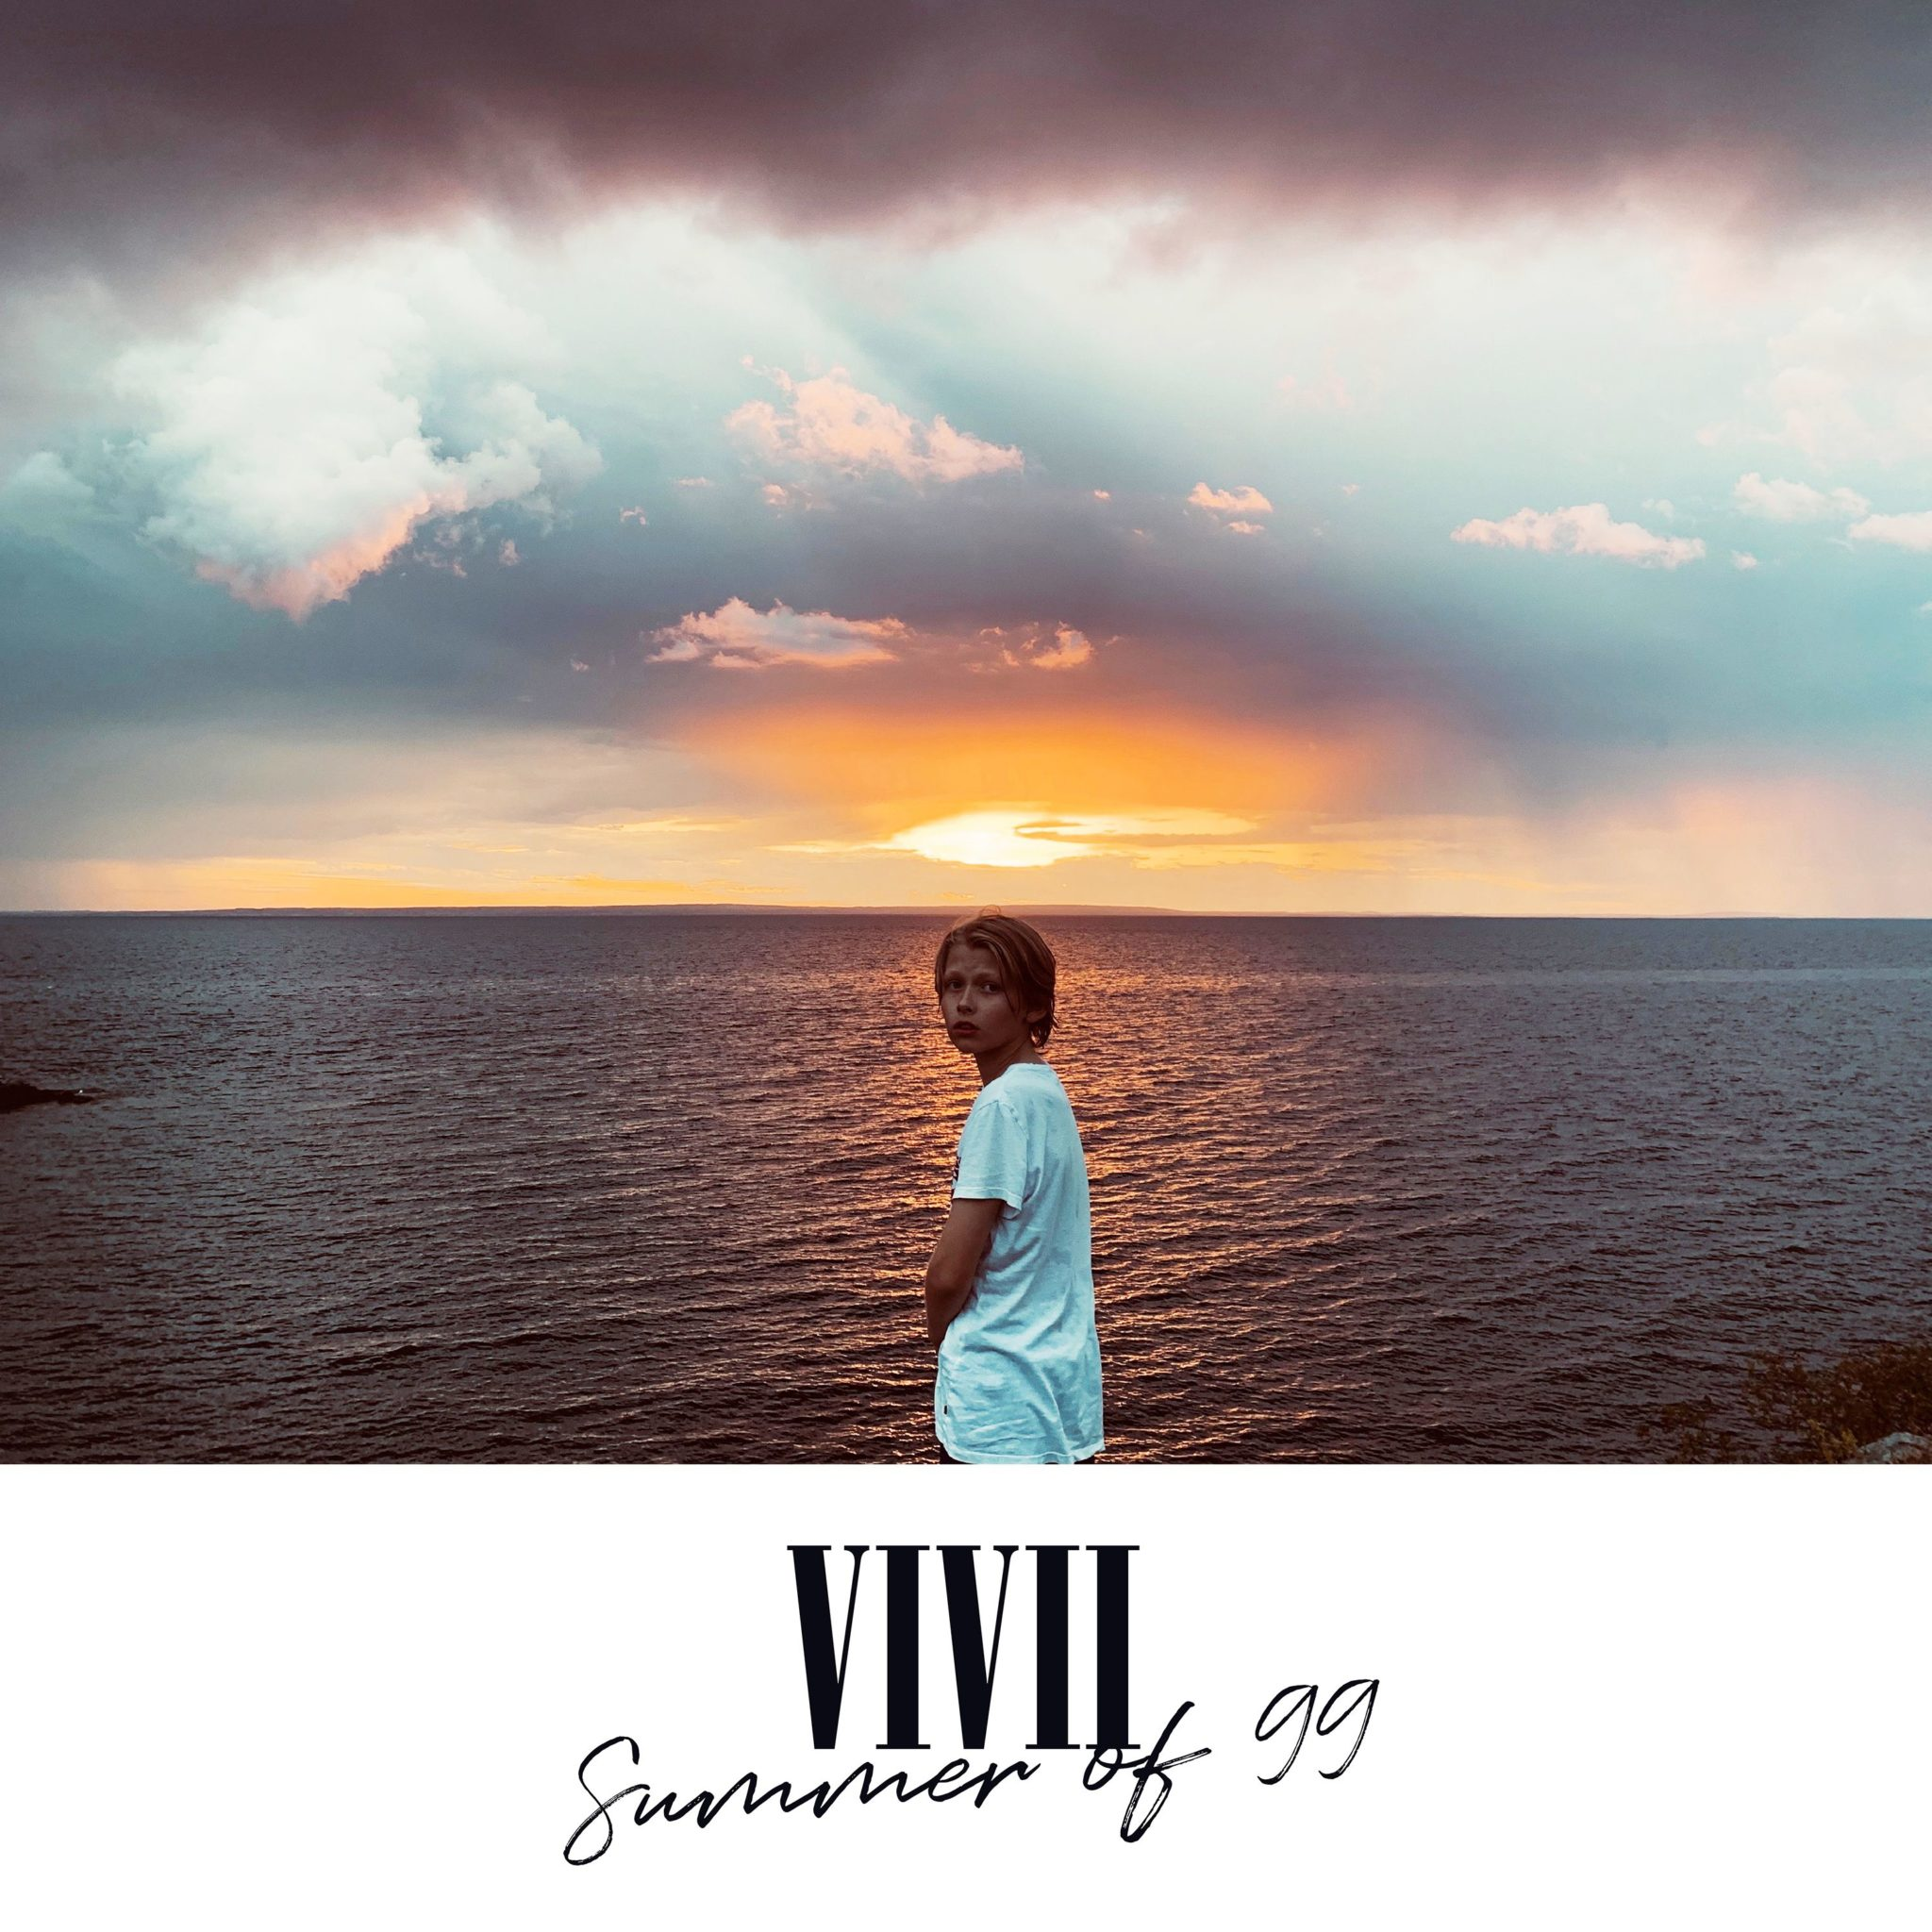 ViVii - Summer Of 99 - Sodwee.com